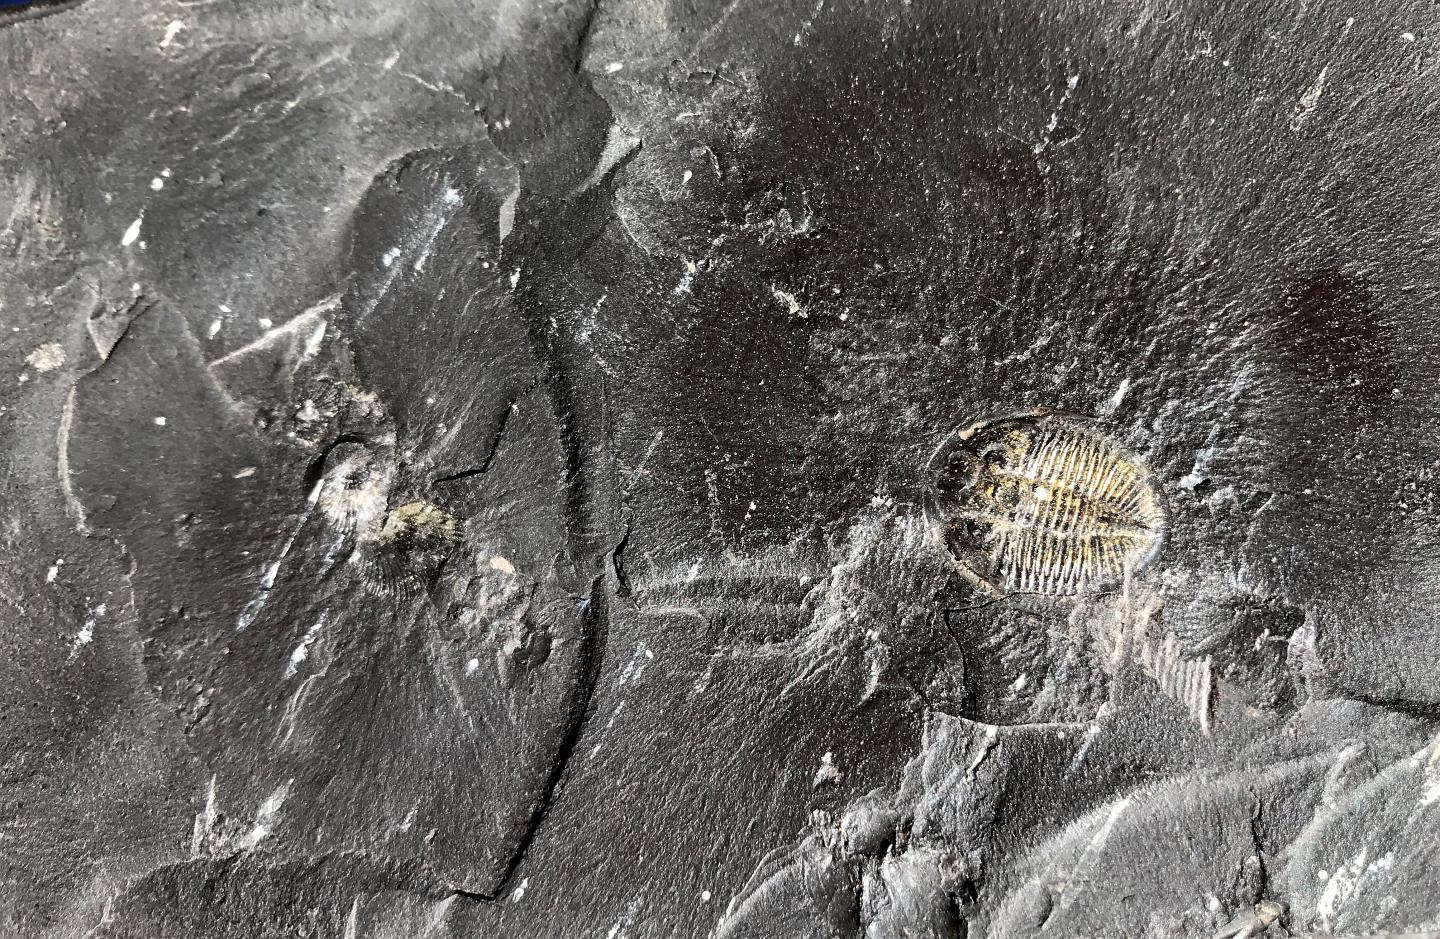 study fossil fuel formation enabled life as we know it to evolve this black shale formed 450 million years ago contains fossils of trilobites and other